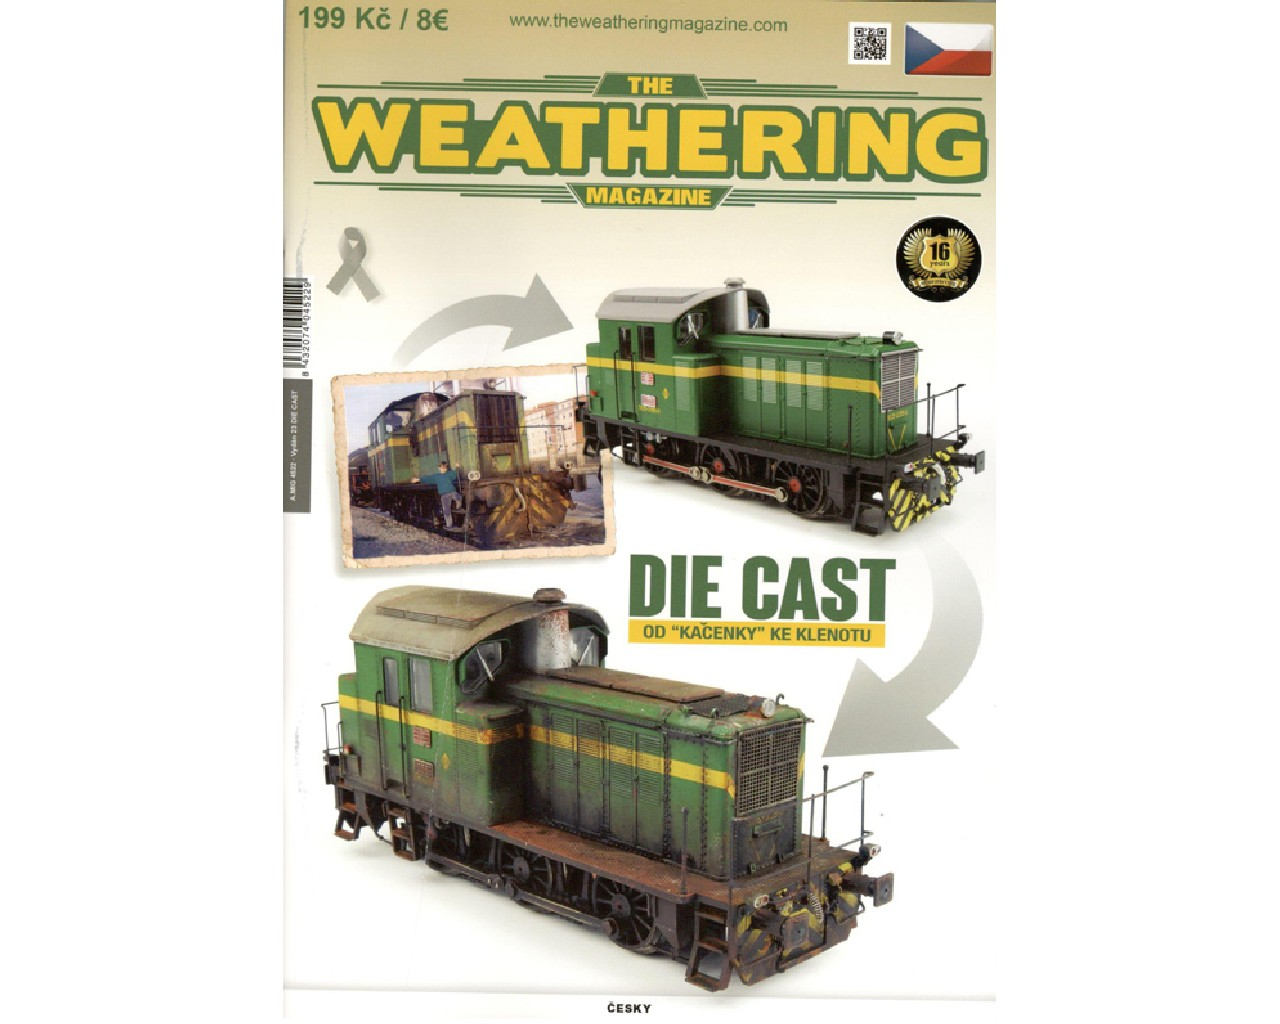 The Weathering Magazine - Die cast